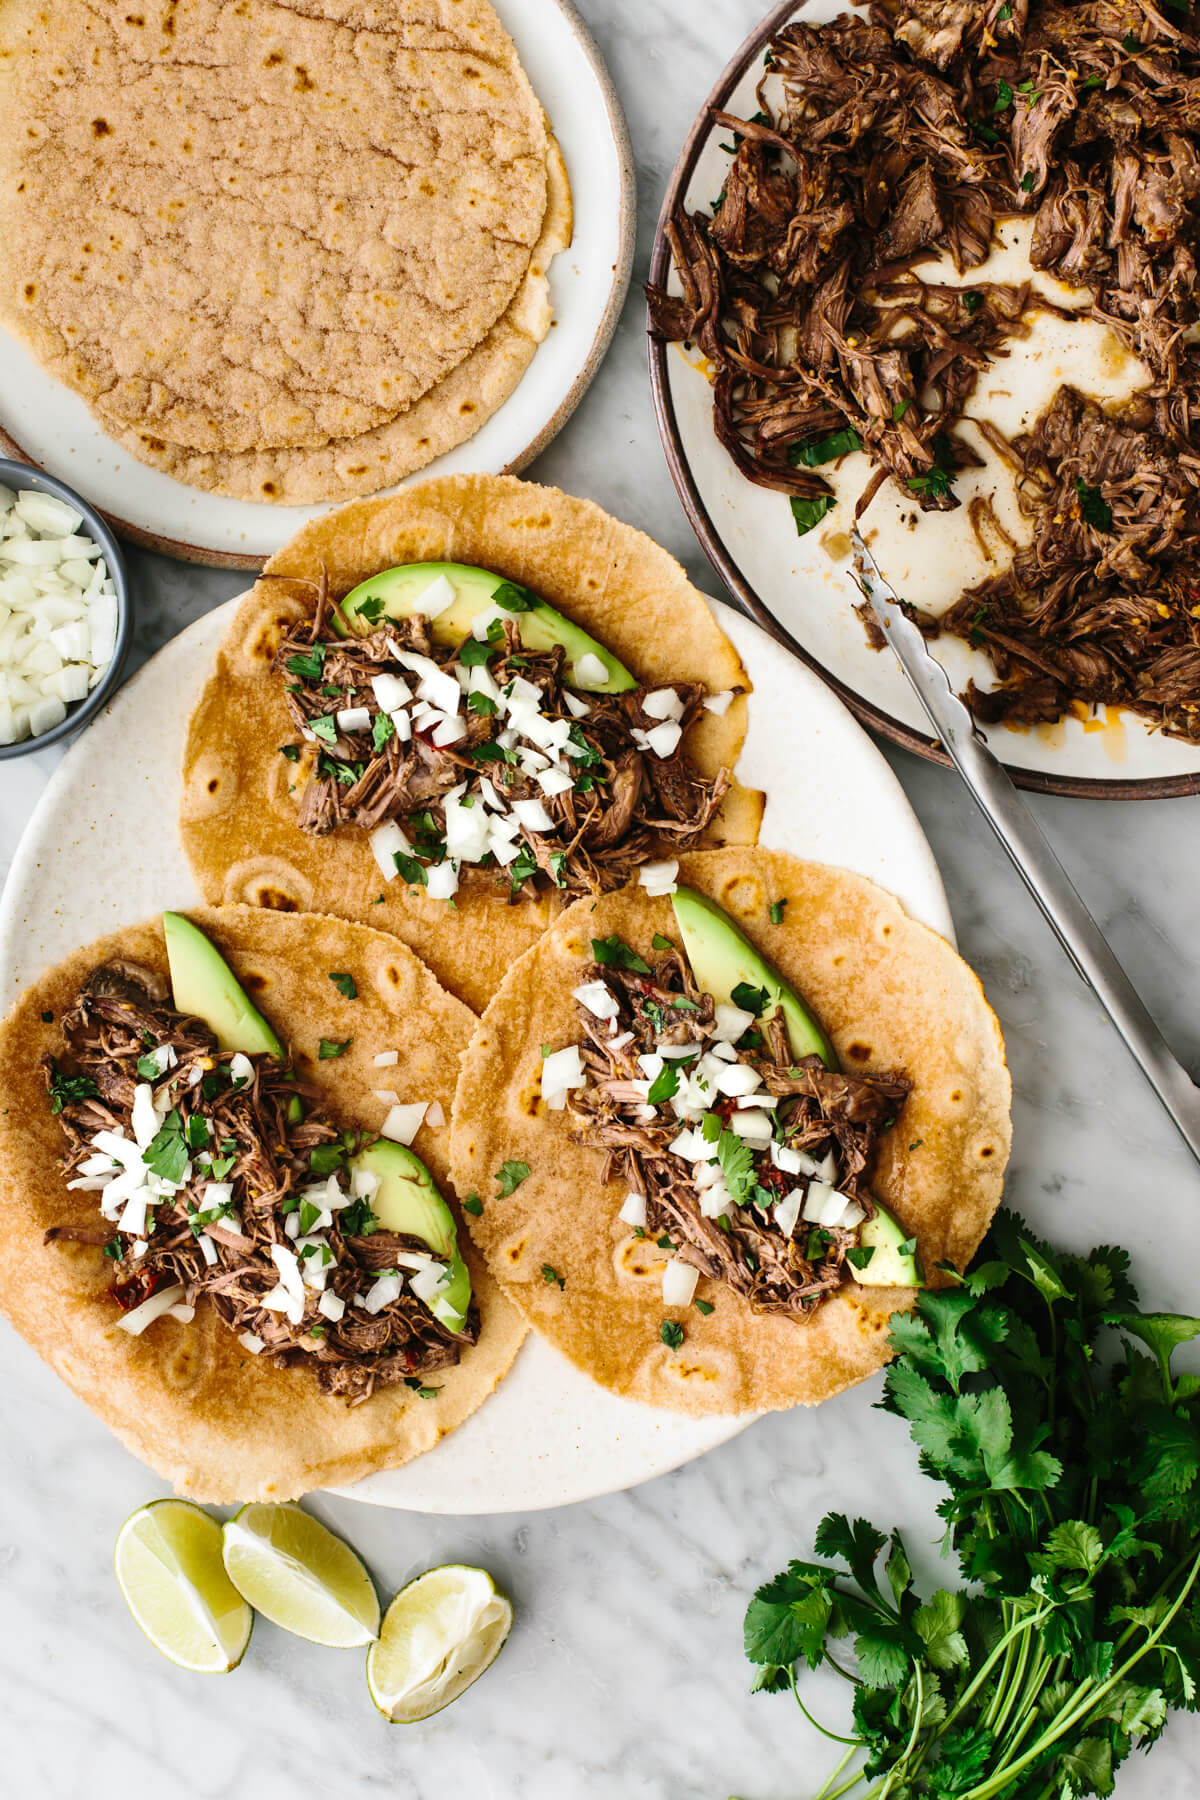 Assembling beef barbacoa tacos with tortillas.